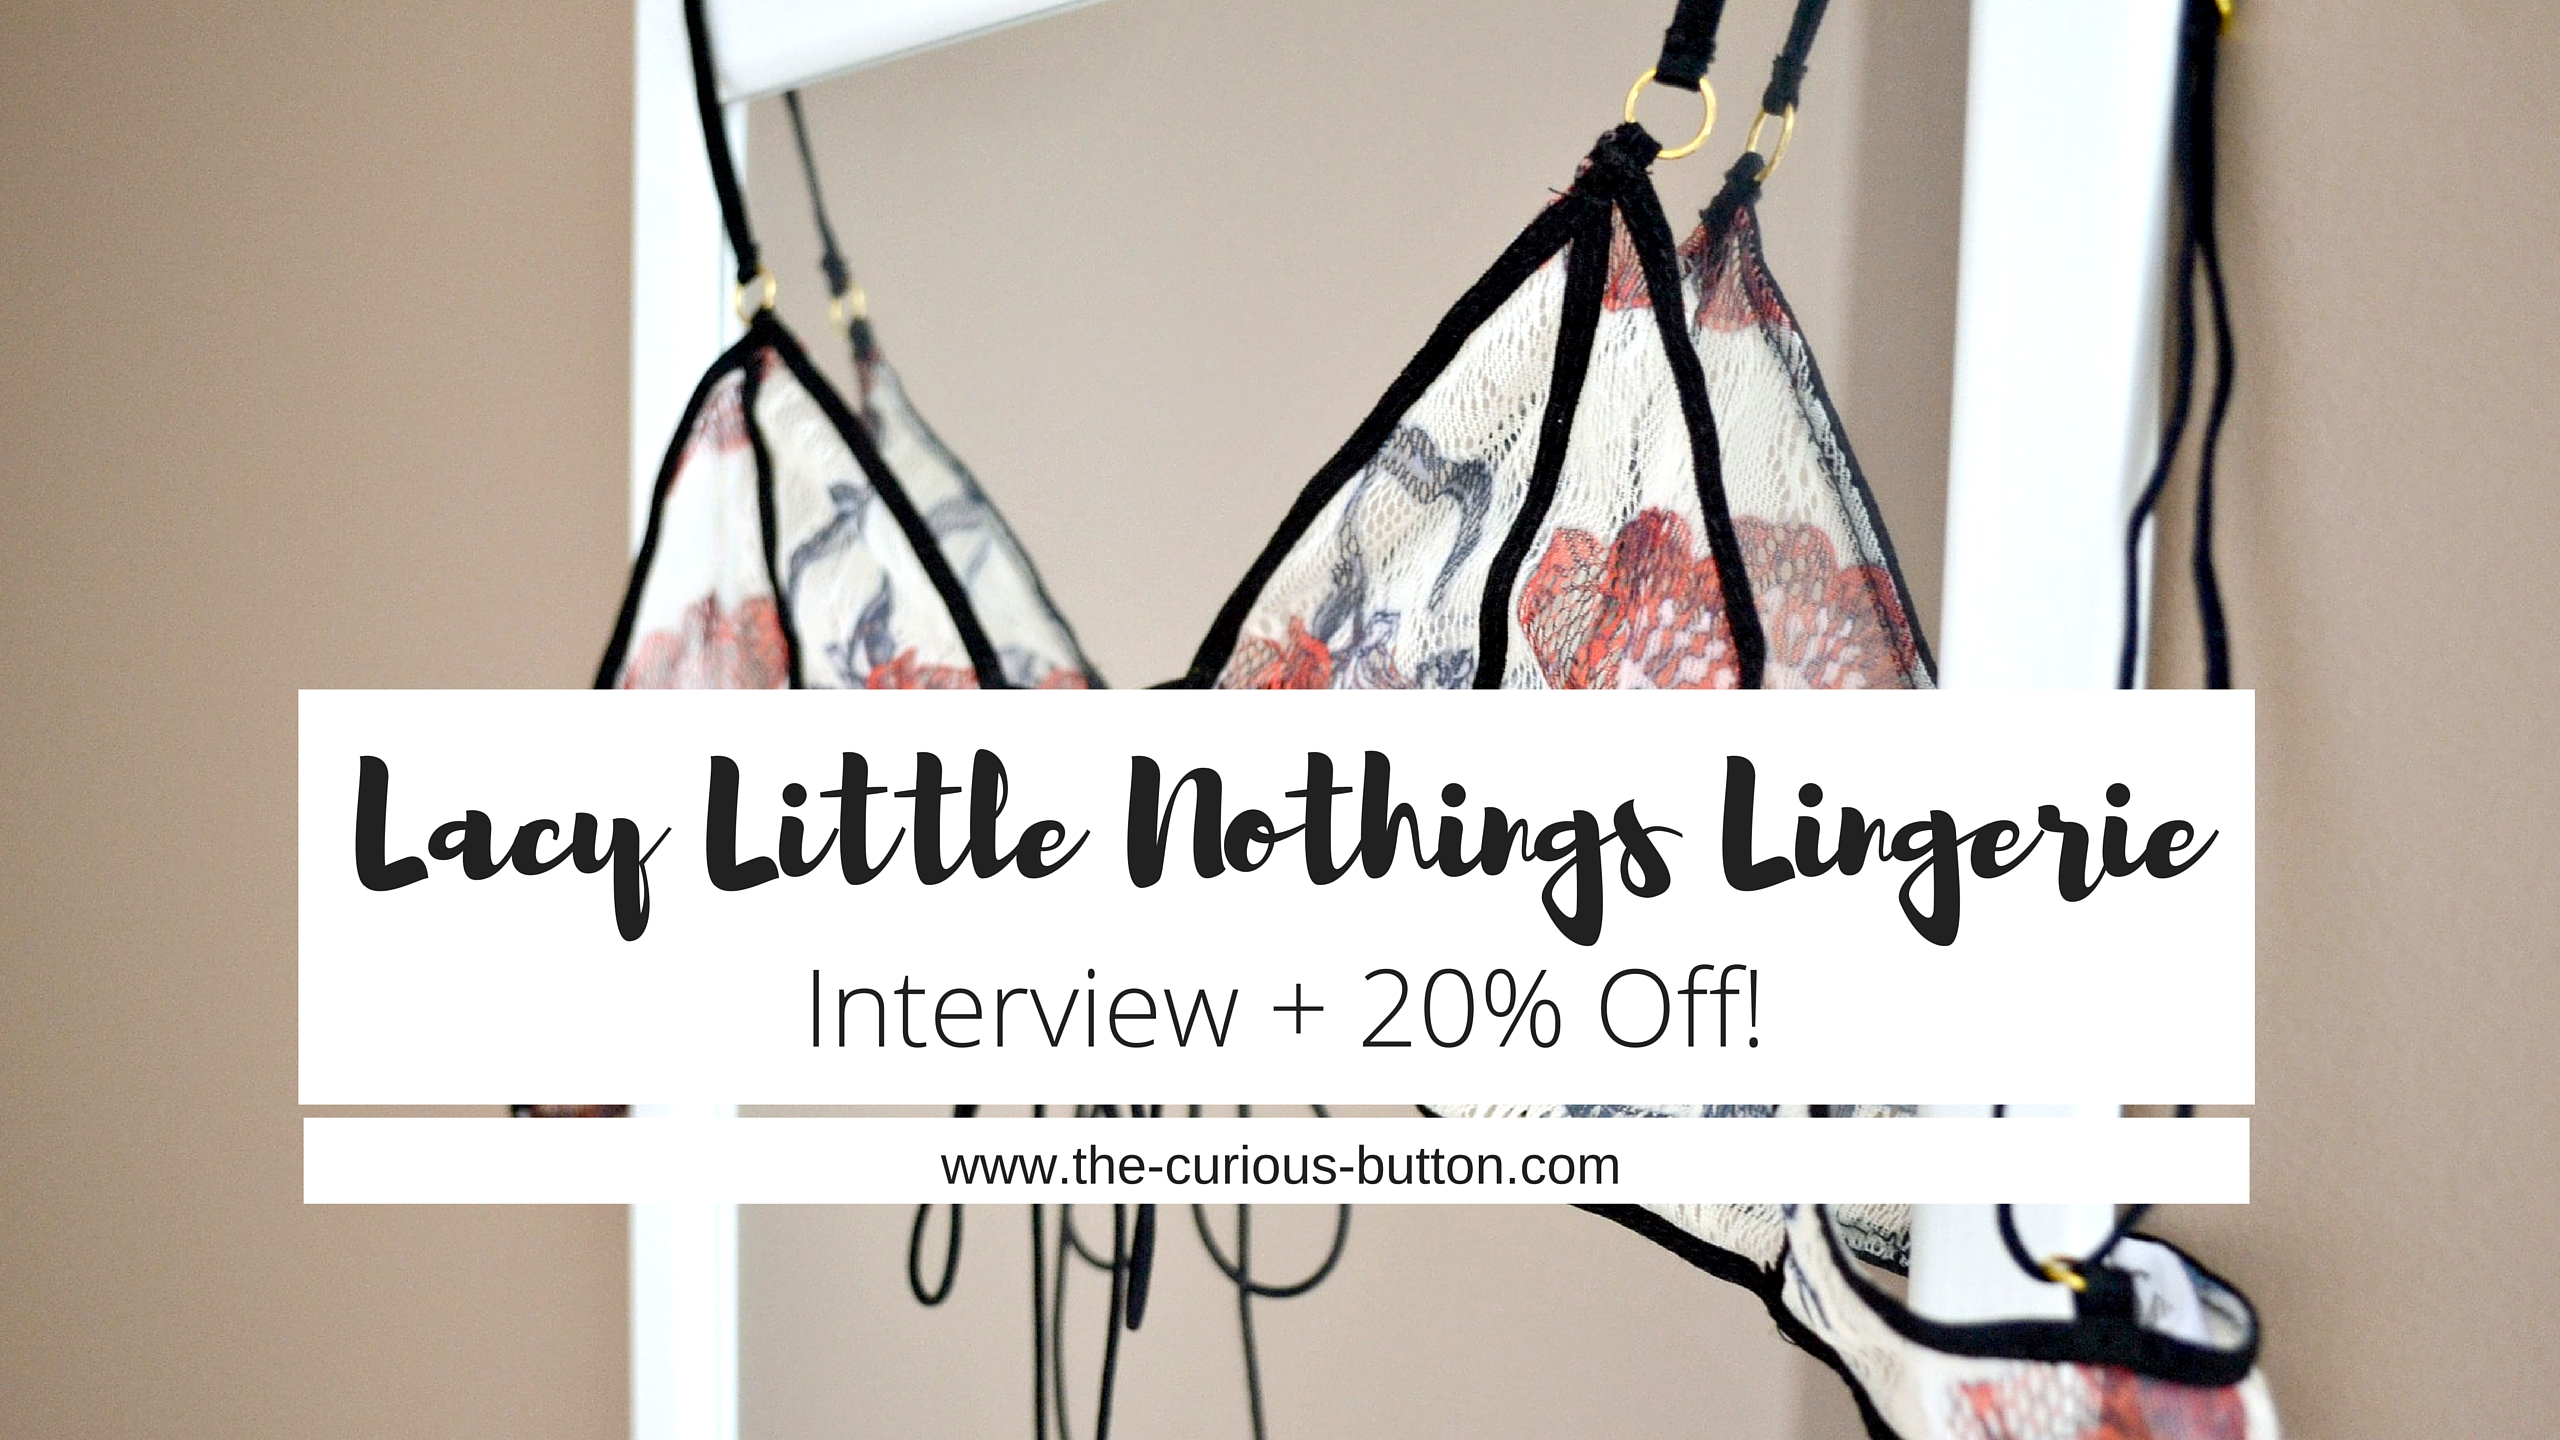 Lacy Little Nothings Lingerie Interview + 20% Off! | The Curious Button